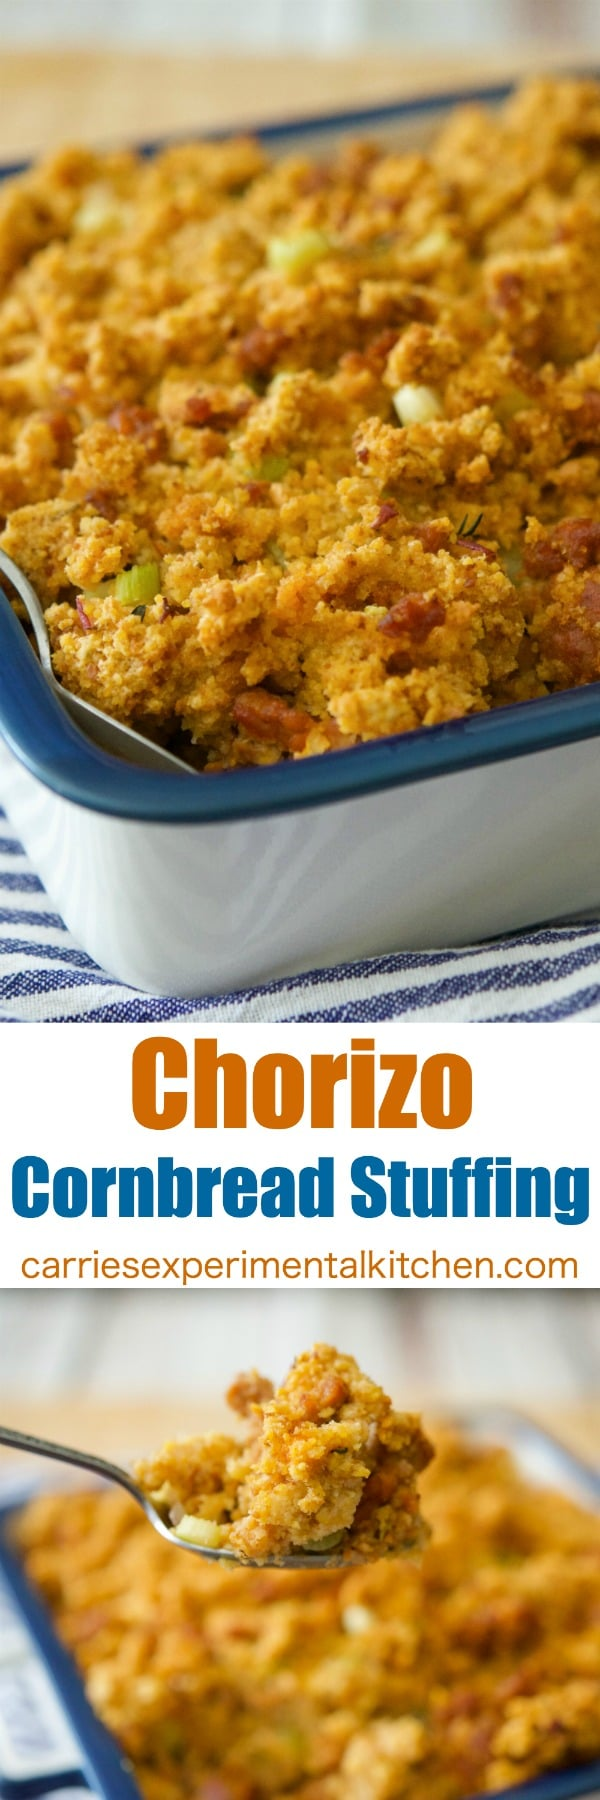 Chorizo Cornbread Stuffing is a deliciously easy stuffing that can be made throughout the year. Serve as a weeknight side dish or on your Thanksgiving table.